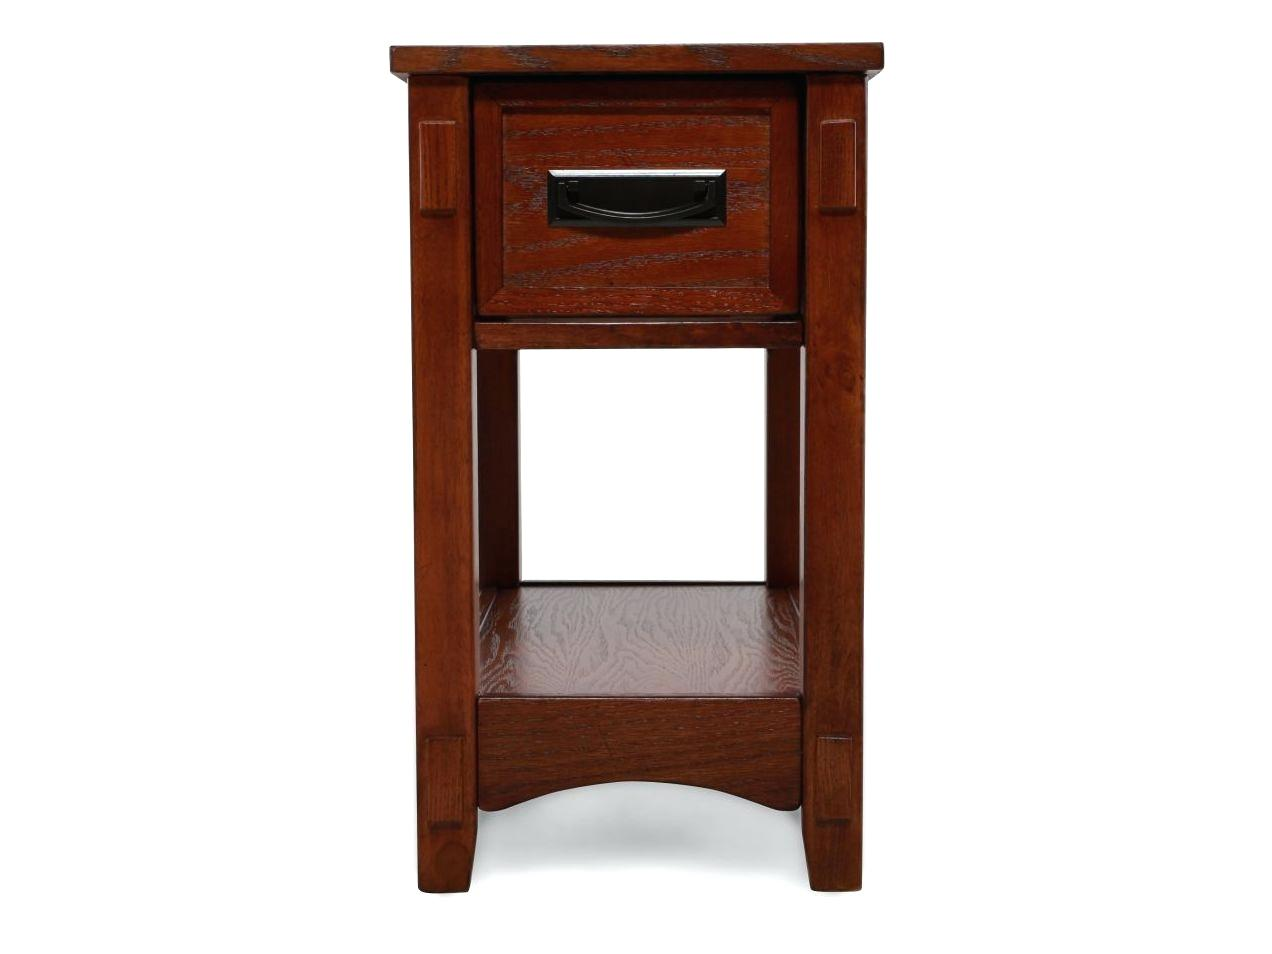 accent tables studio large minaret satin nickel table contemporary one drawer end medium brown antique for living room small round decorative cover dale tiffany wall art side